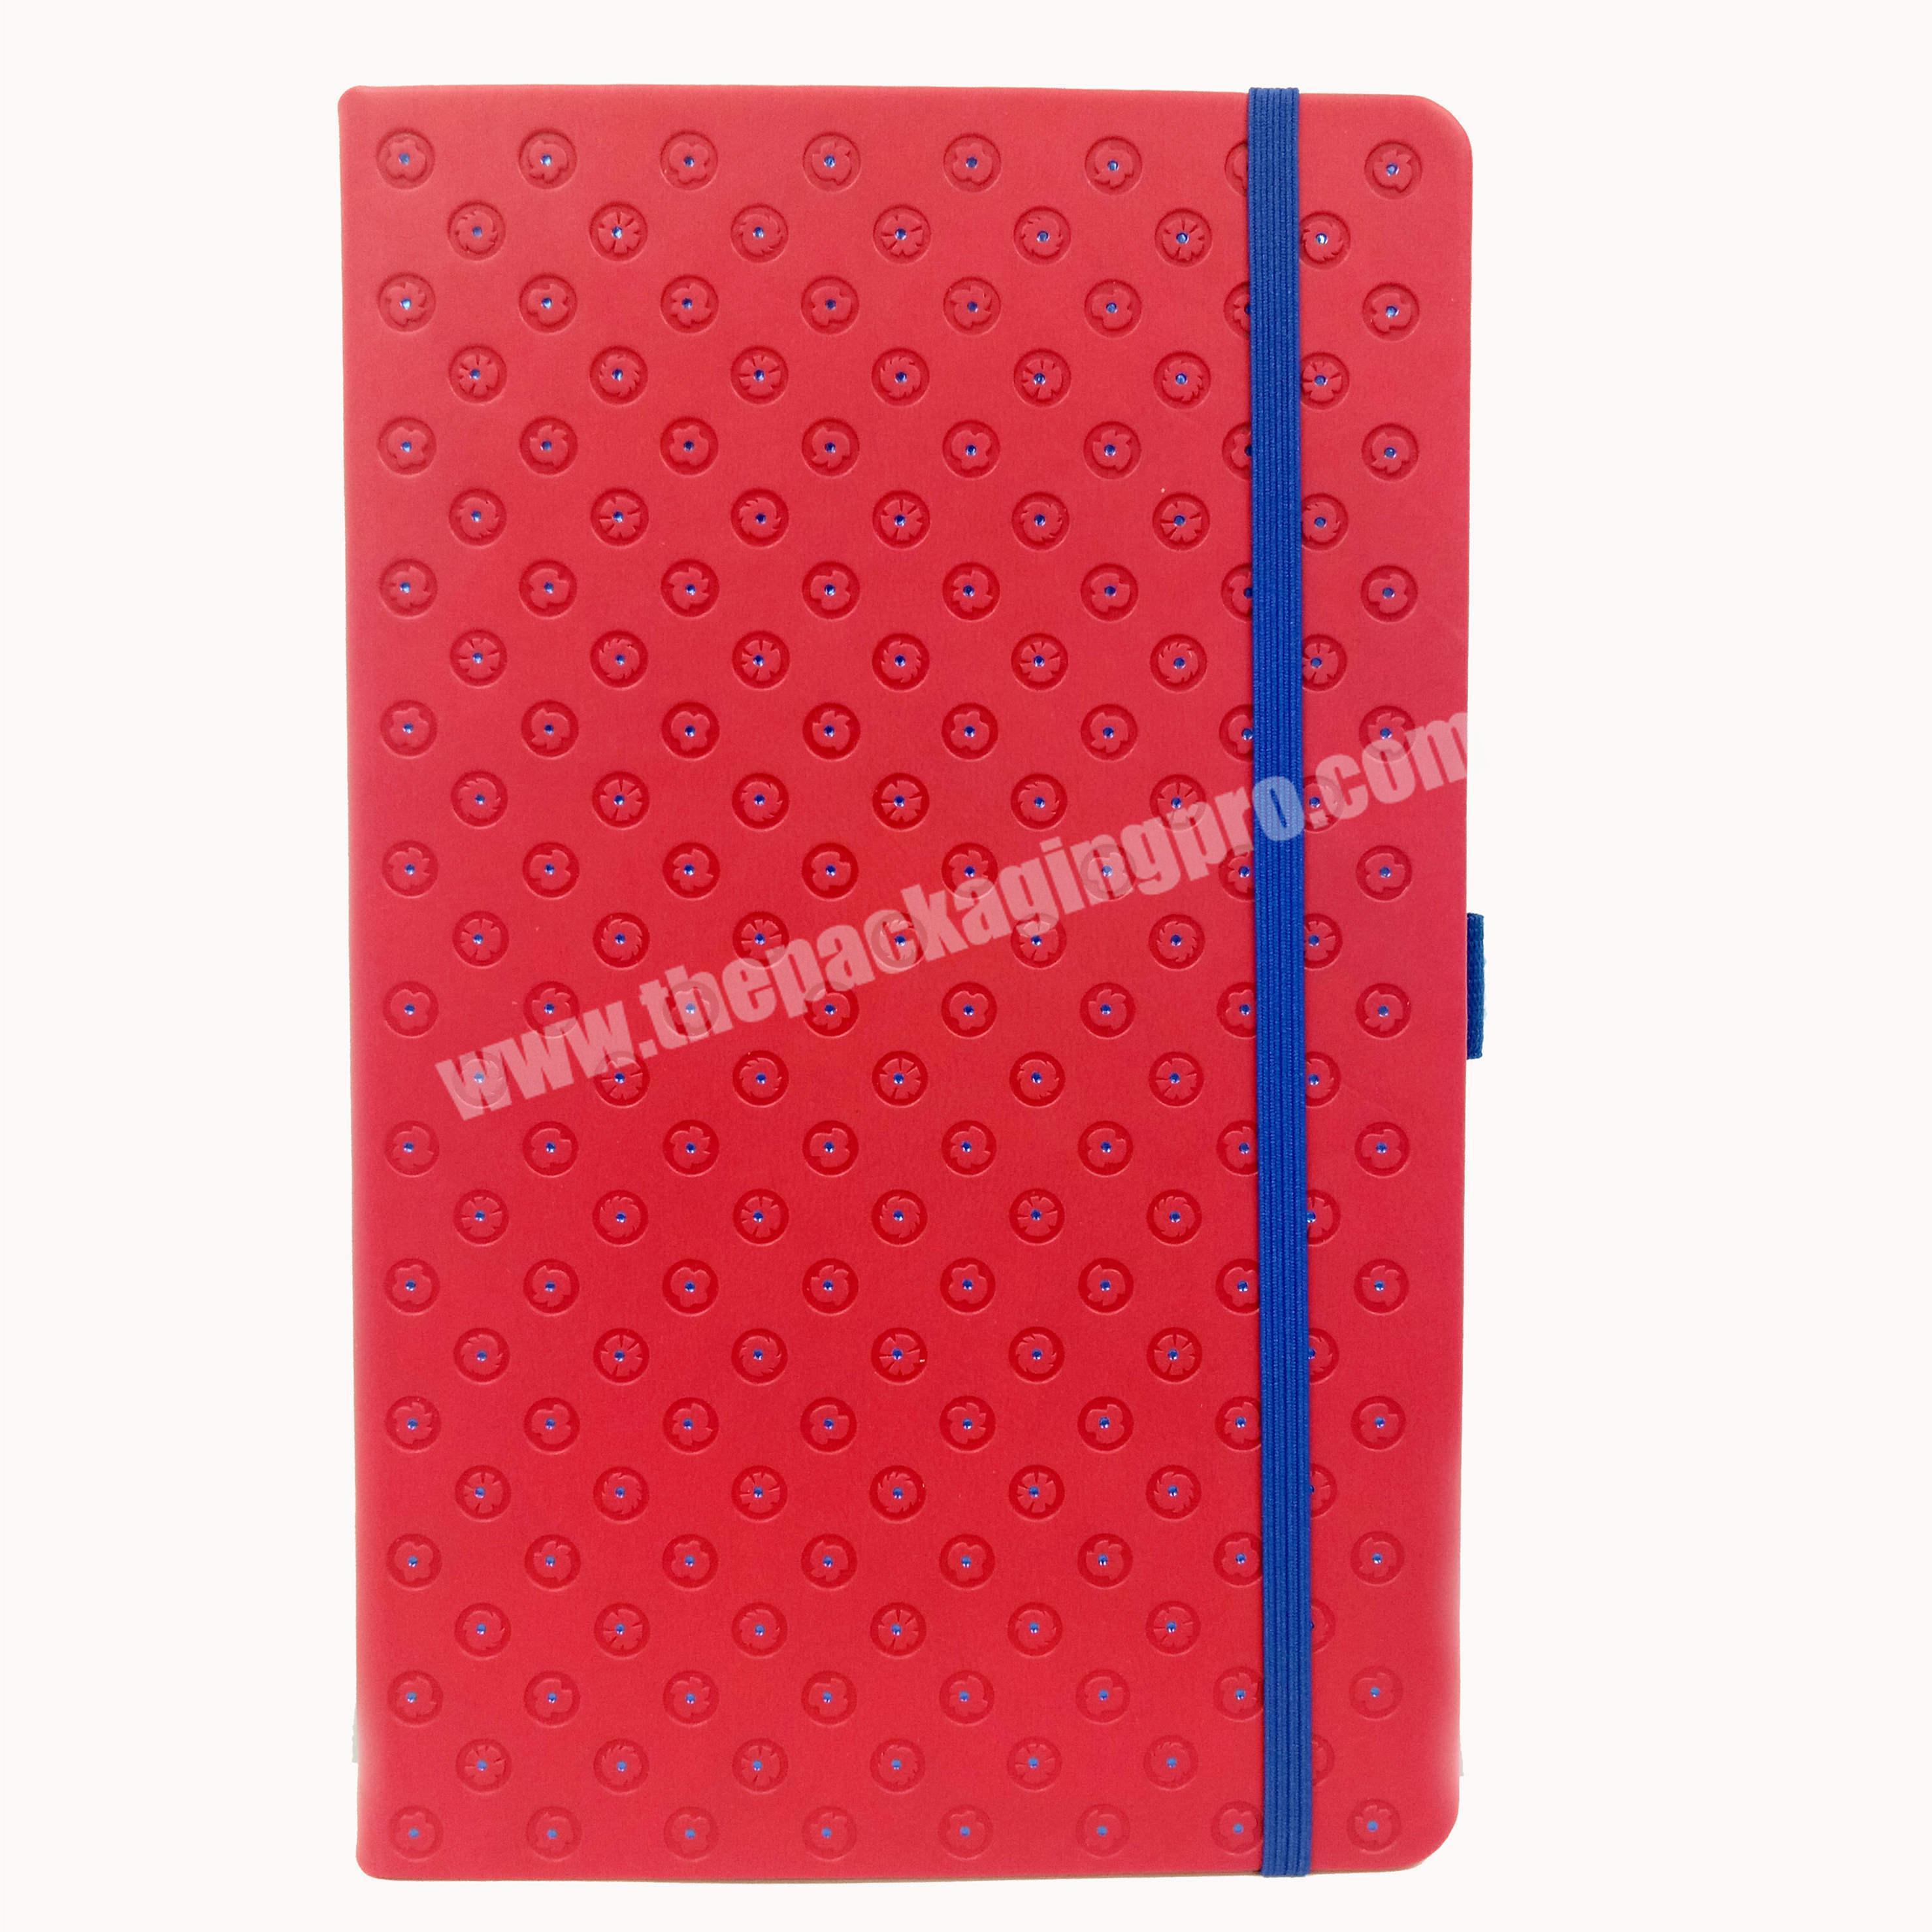 Wholesale eco friendly notebook private planner business diary agenda